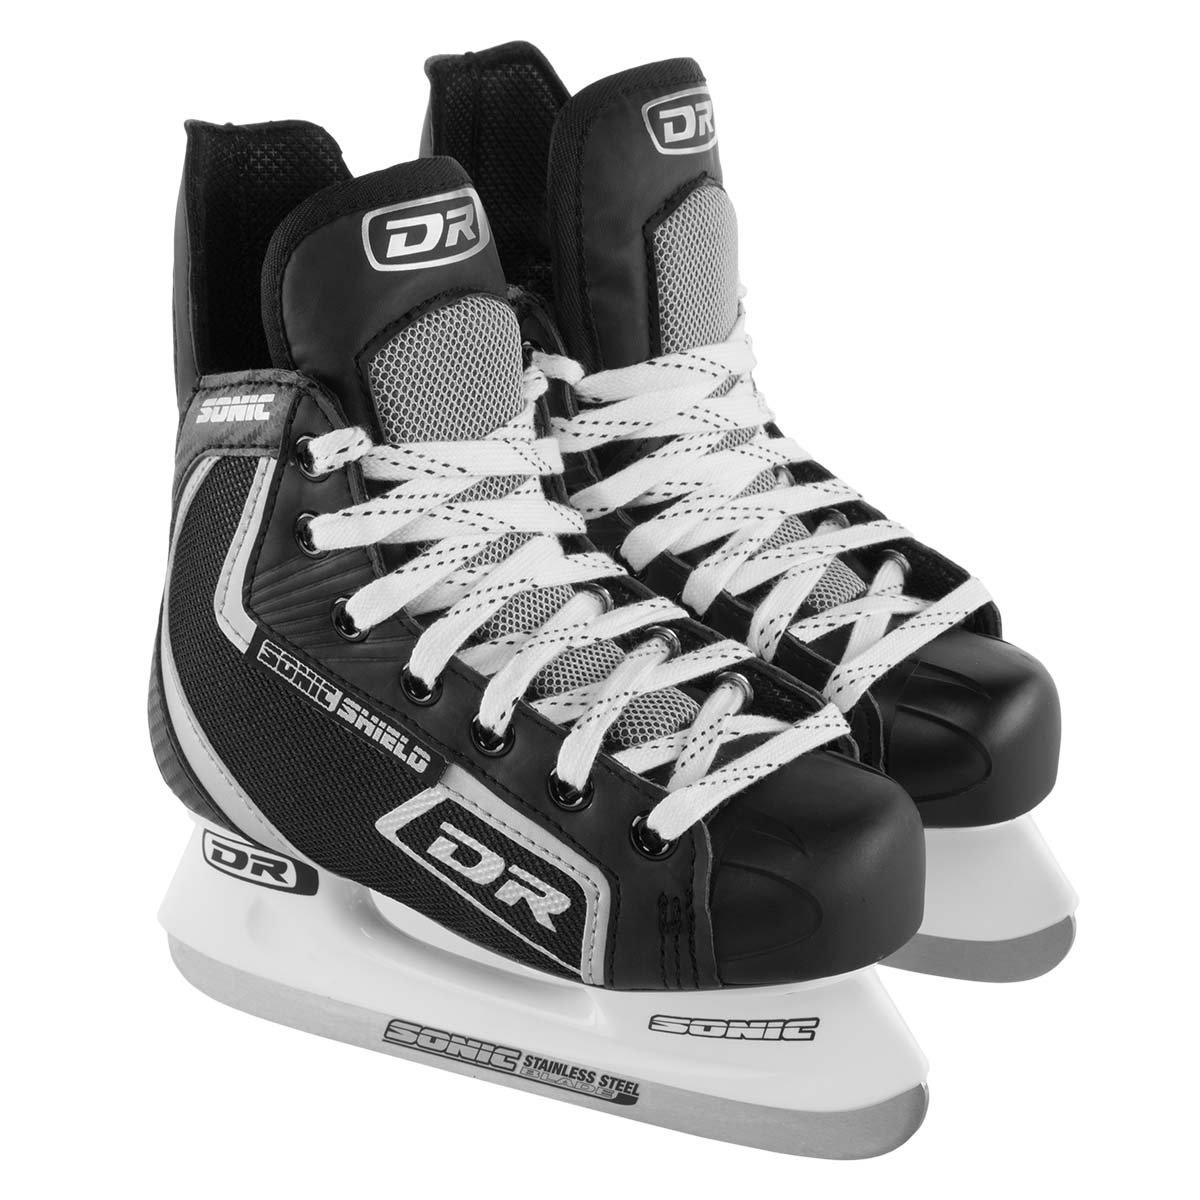 DR Sports 113 Men's Hockey Skate Black/Silver, Size 12